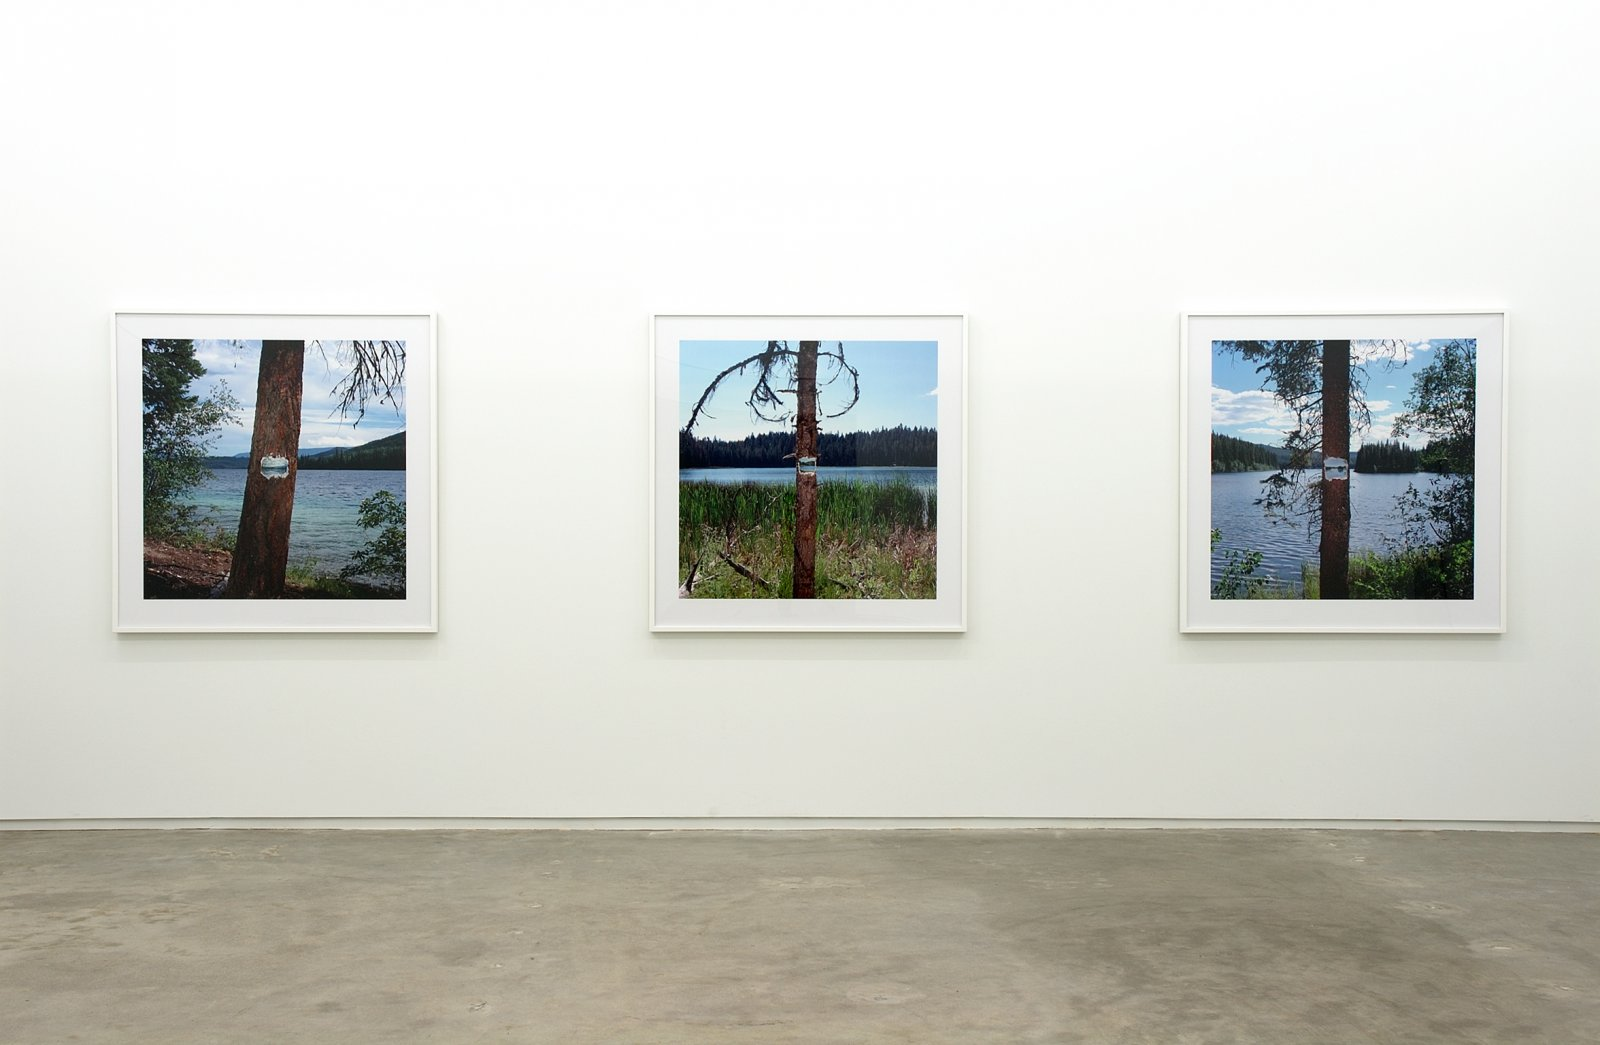 ​Kevin Schmidt, installation view, Catriona Jeffries, Vancouver, 2006 by Kevin Schmidt